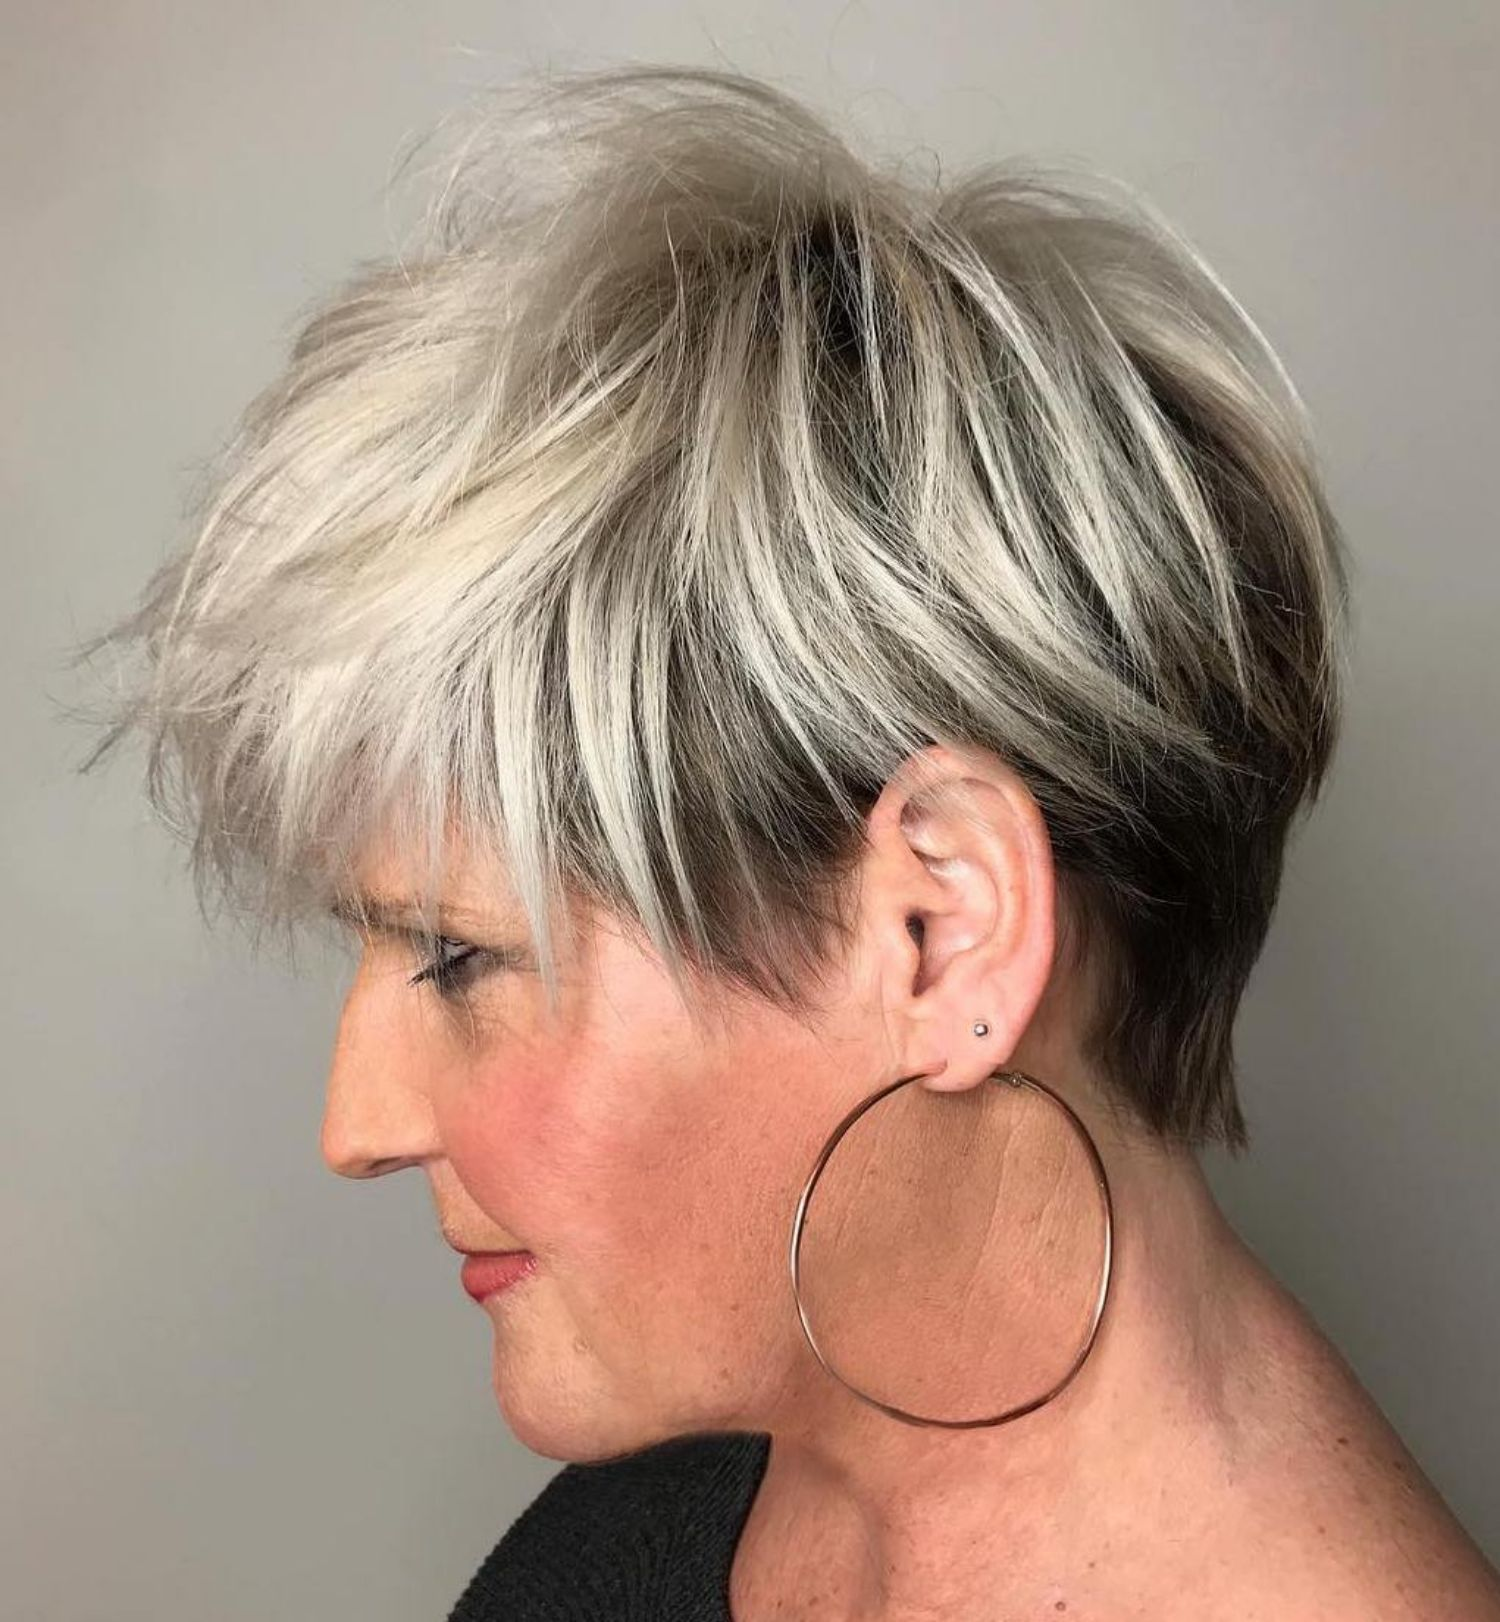 20 Charming Pixie Haircuts For Women Over 50 #charming